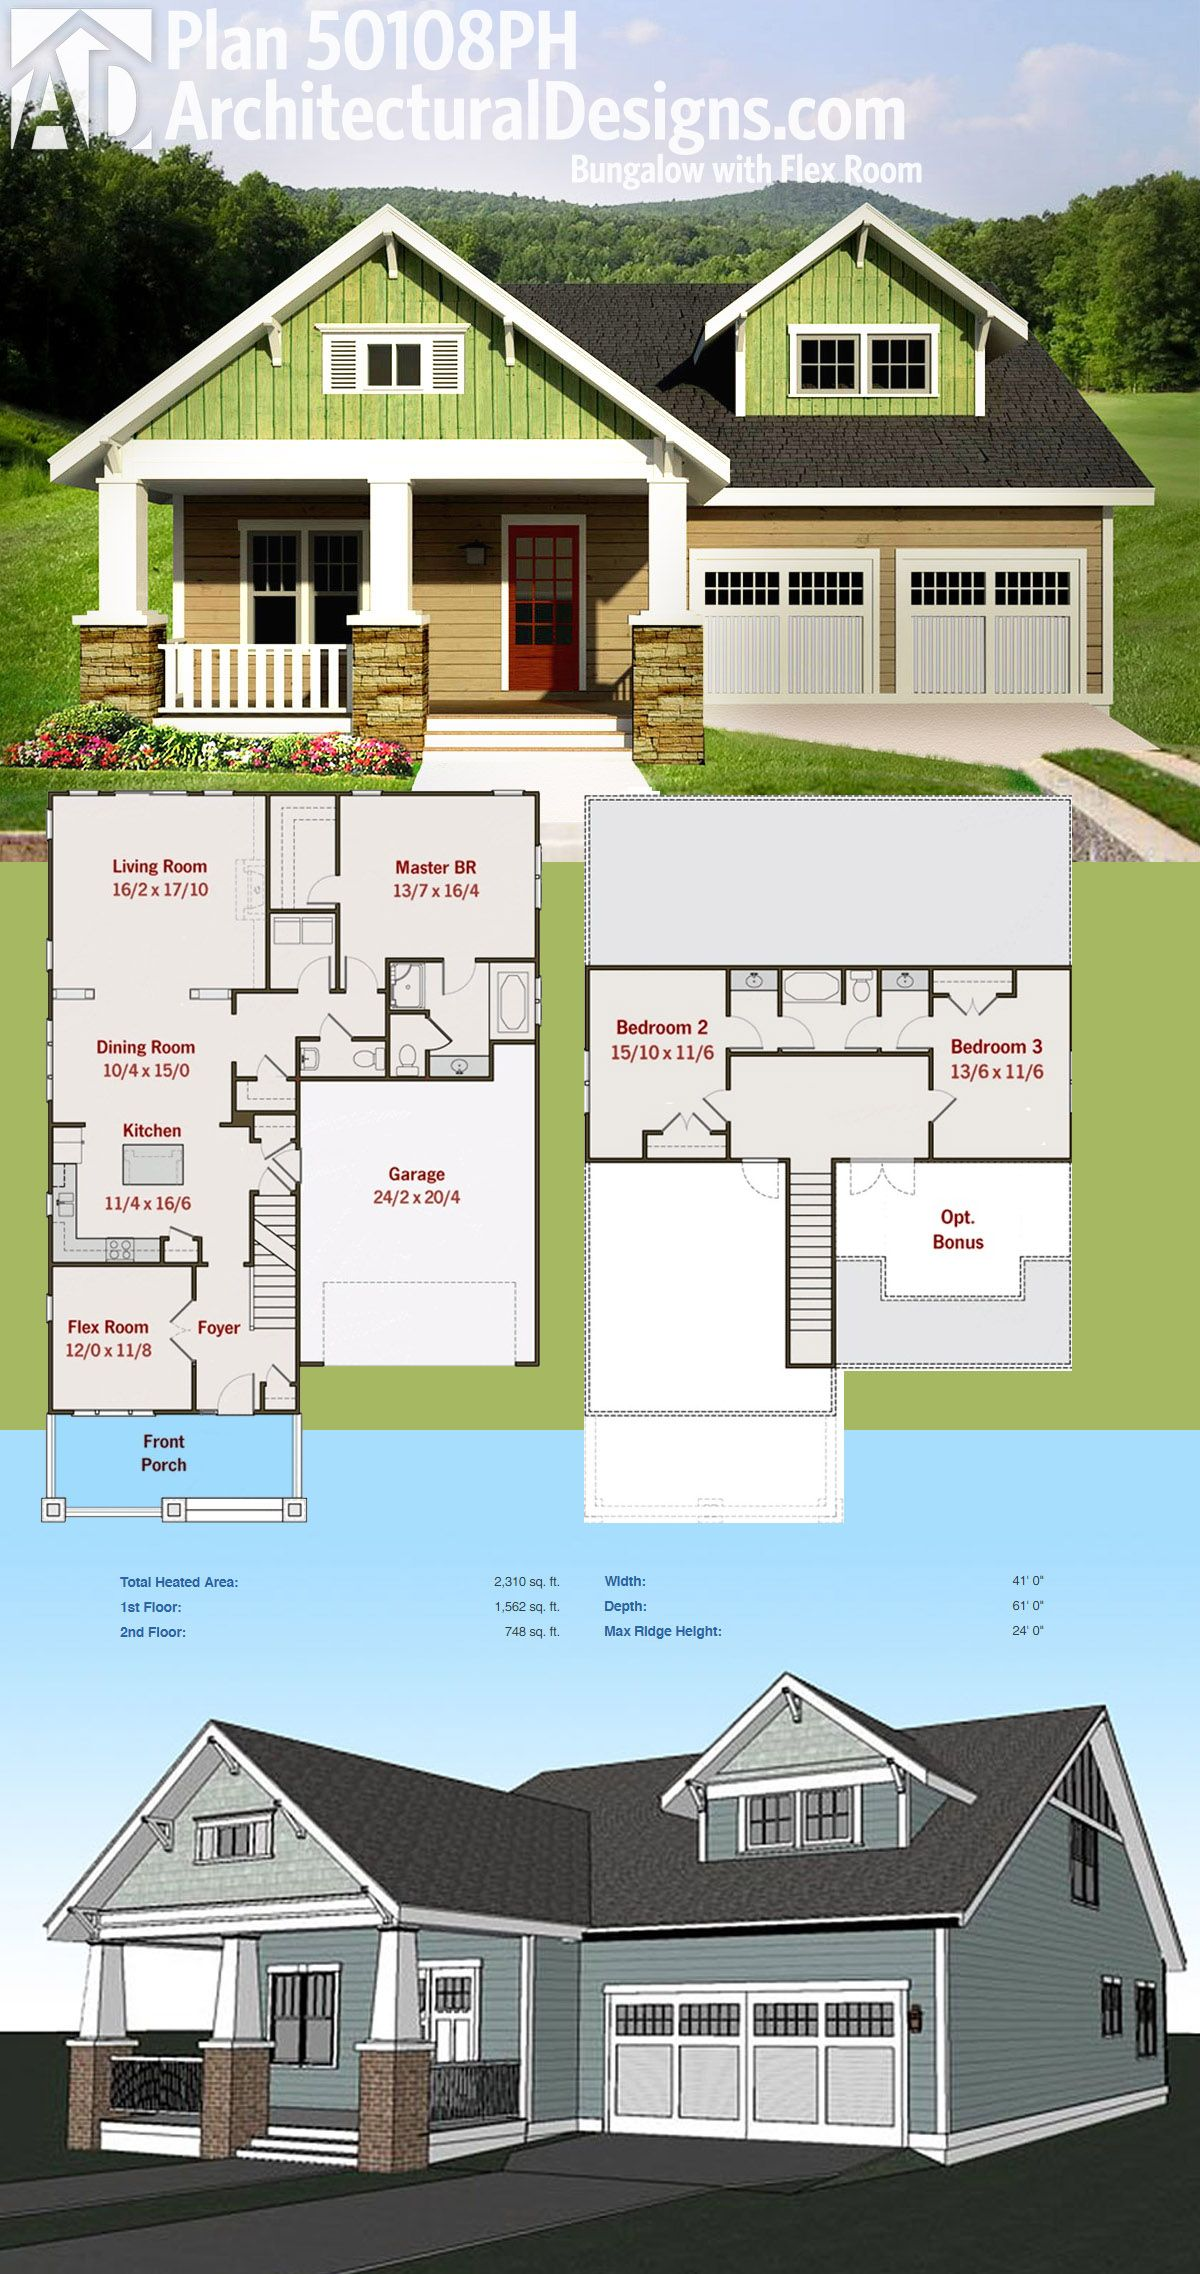 Plan 50108PH Bungalow with Flex Room Bungalow house